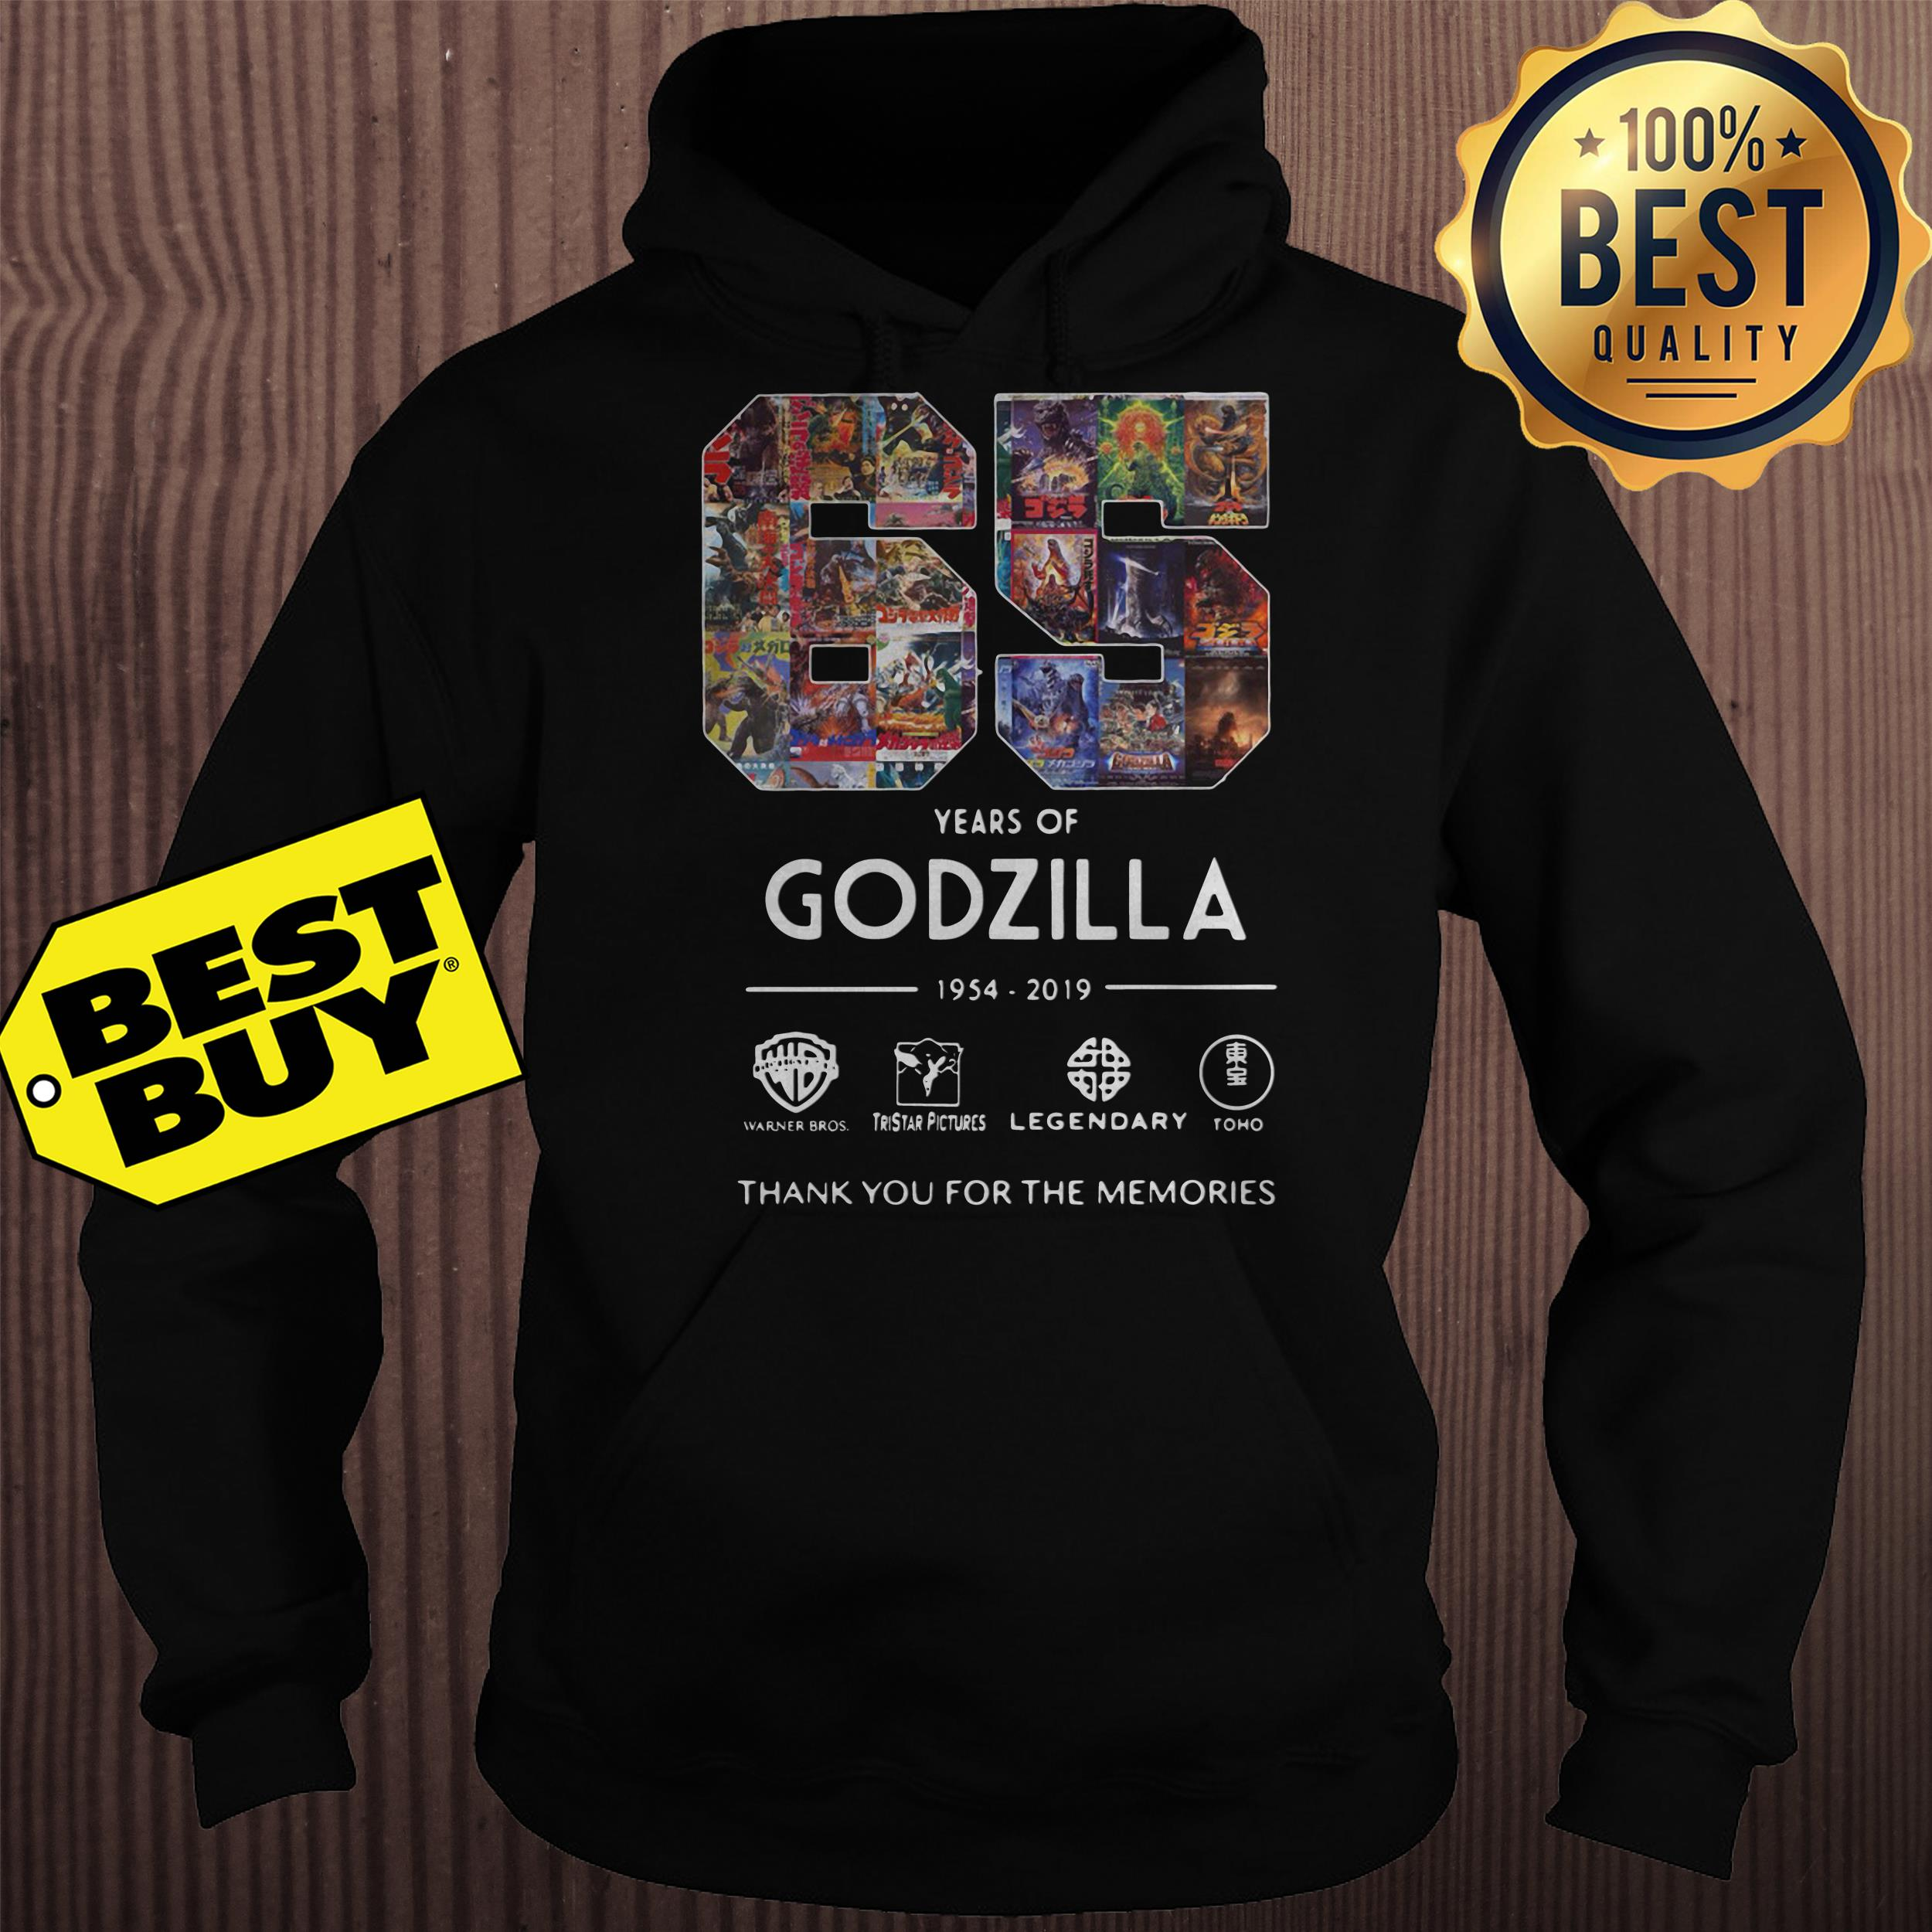 65 Years Godzilla Thank Memories hoodie